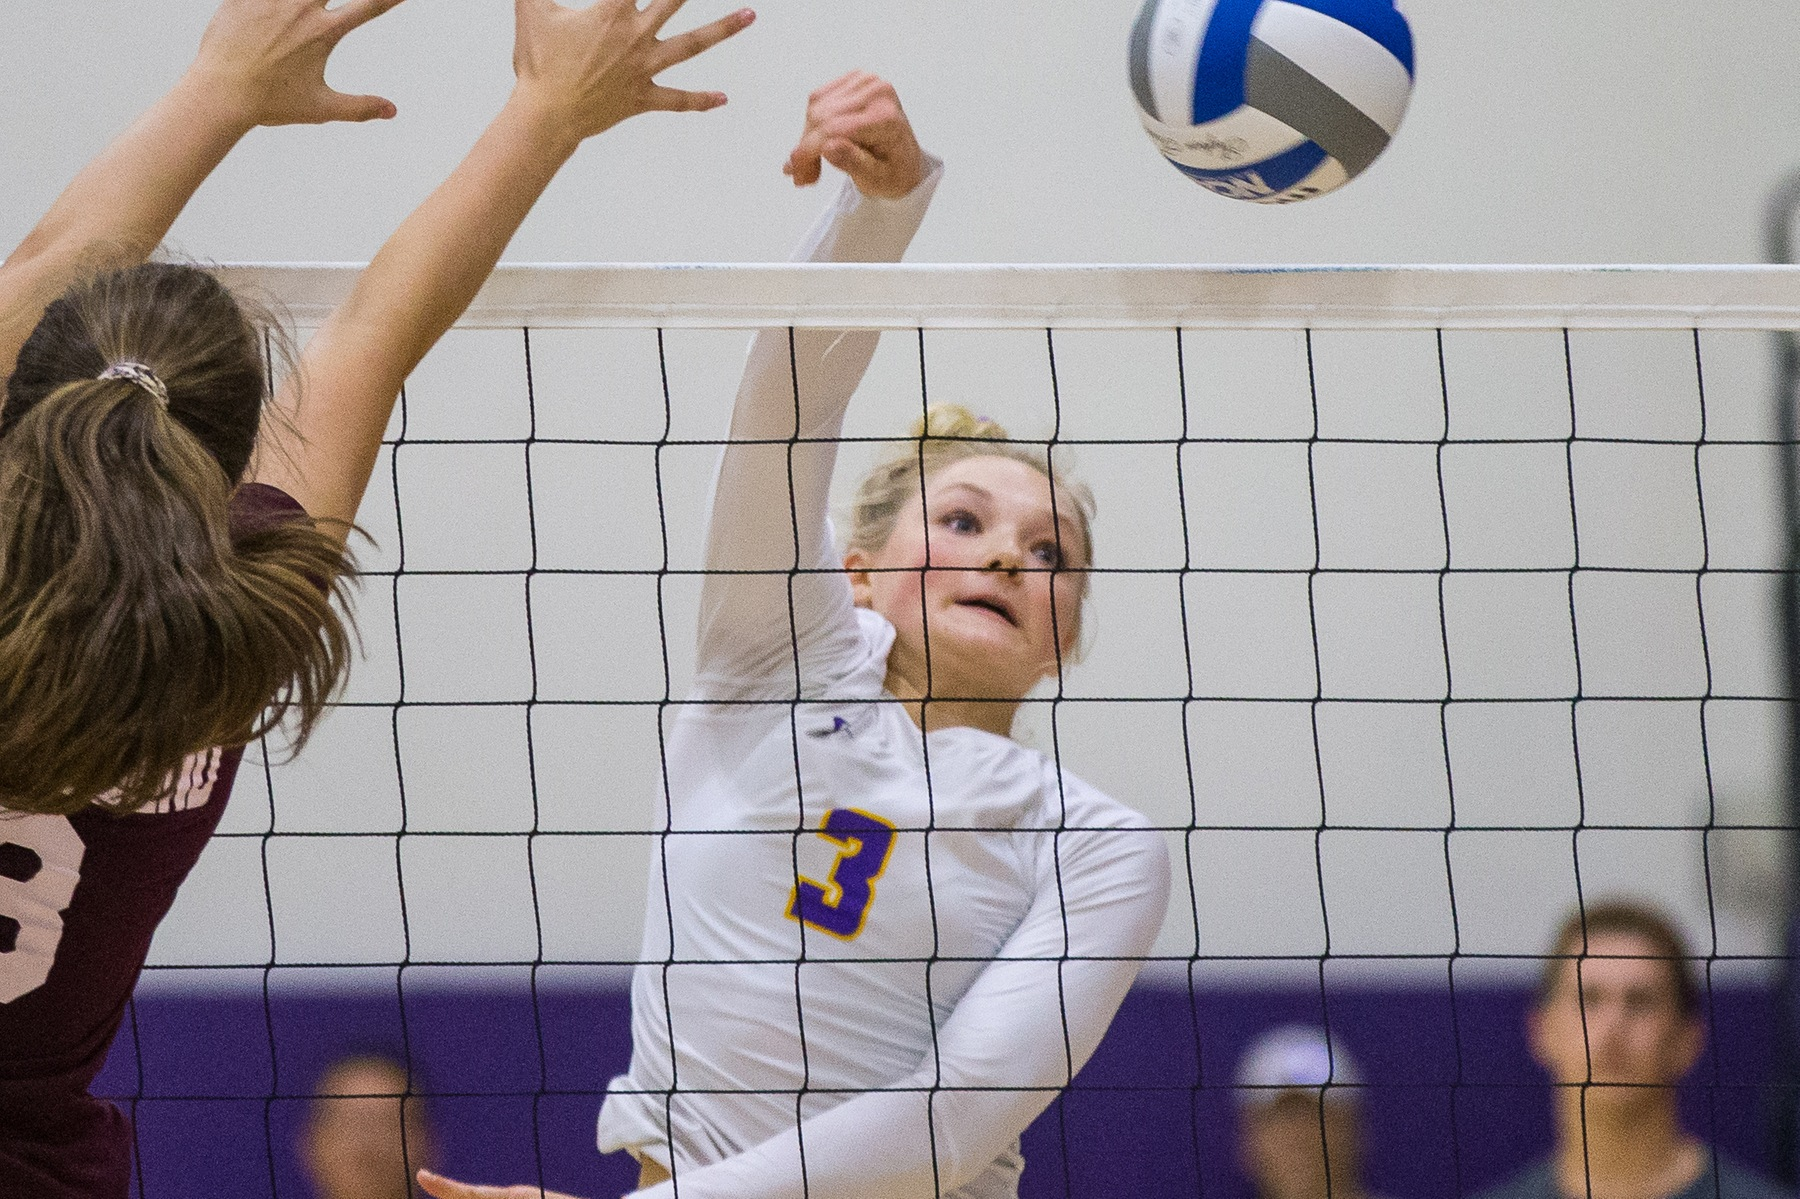 Maci Haddad swatted down a team-high eight kills as the Regals tested No. 11 Trinity (Texas).